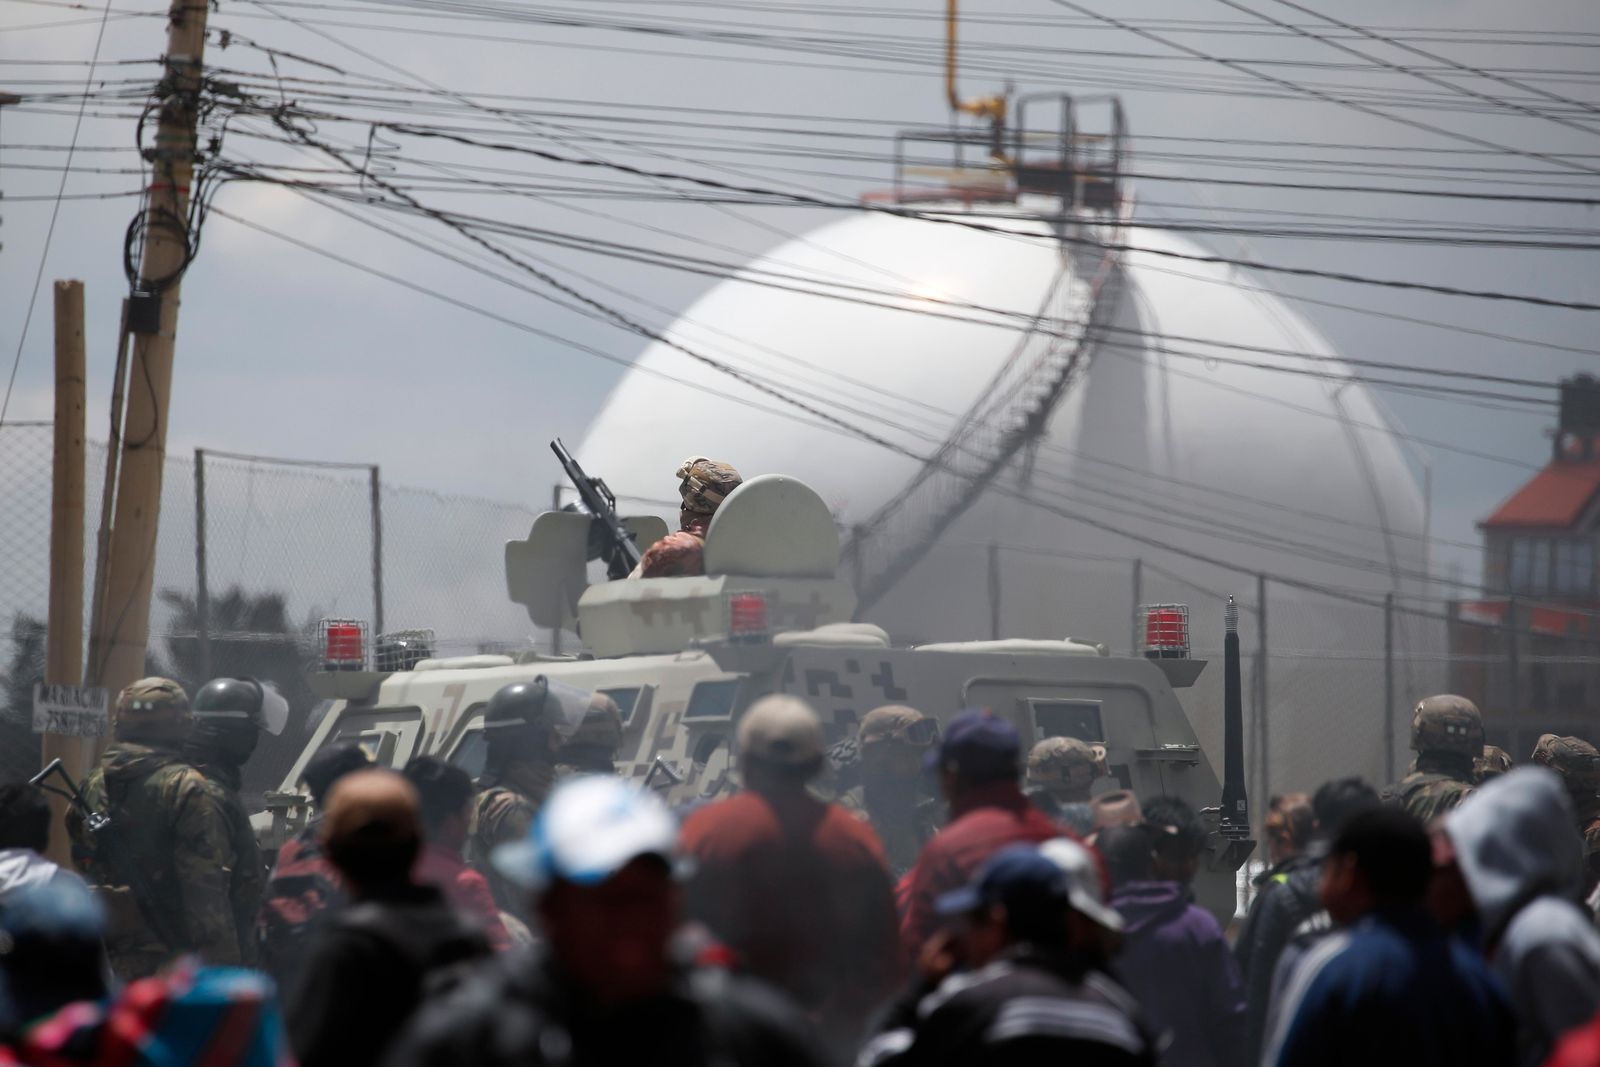 Soldiers guard the perimeters of the state-own Senkata filling plant, as supporters of former President Evo Morales gather round, in El Alto, on the outskirts of La Paz, Bolivia, Tuesday, Nov. 19, 2019.{ } (AP Photo/Natacha Pisarenko)